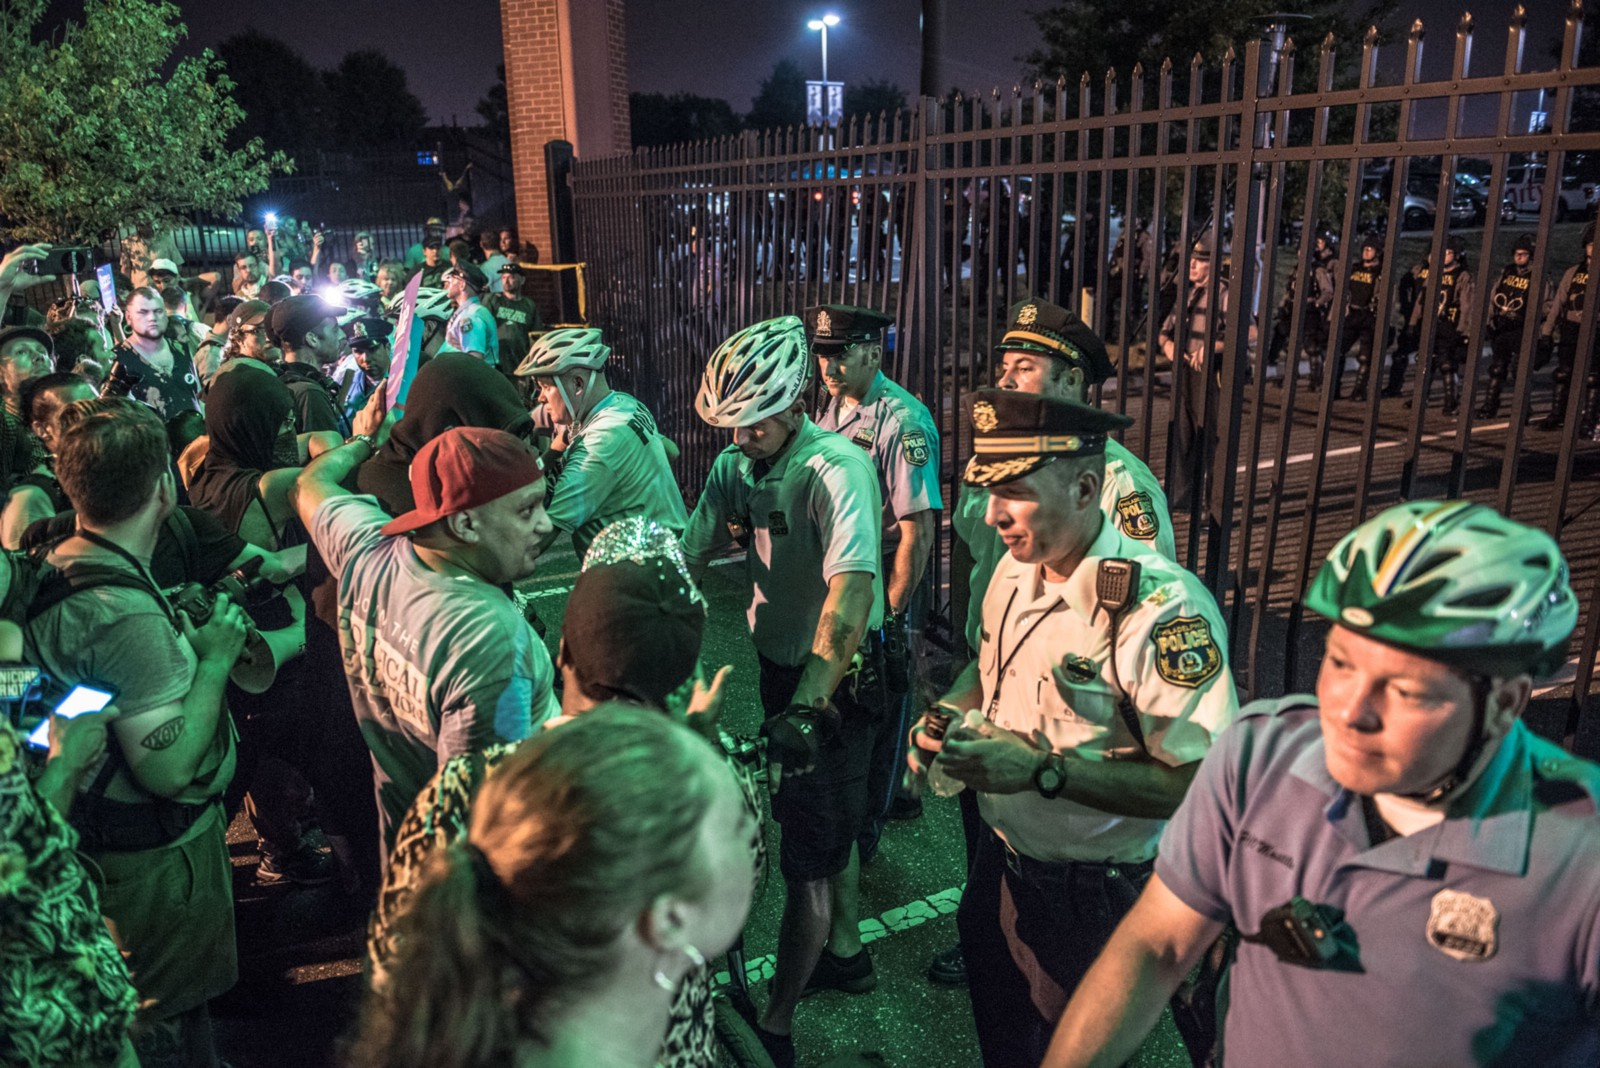 Philadelphia Police cite 106, arrest none during DNC